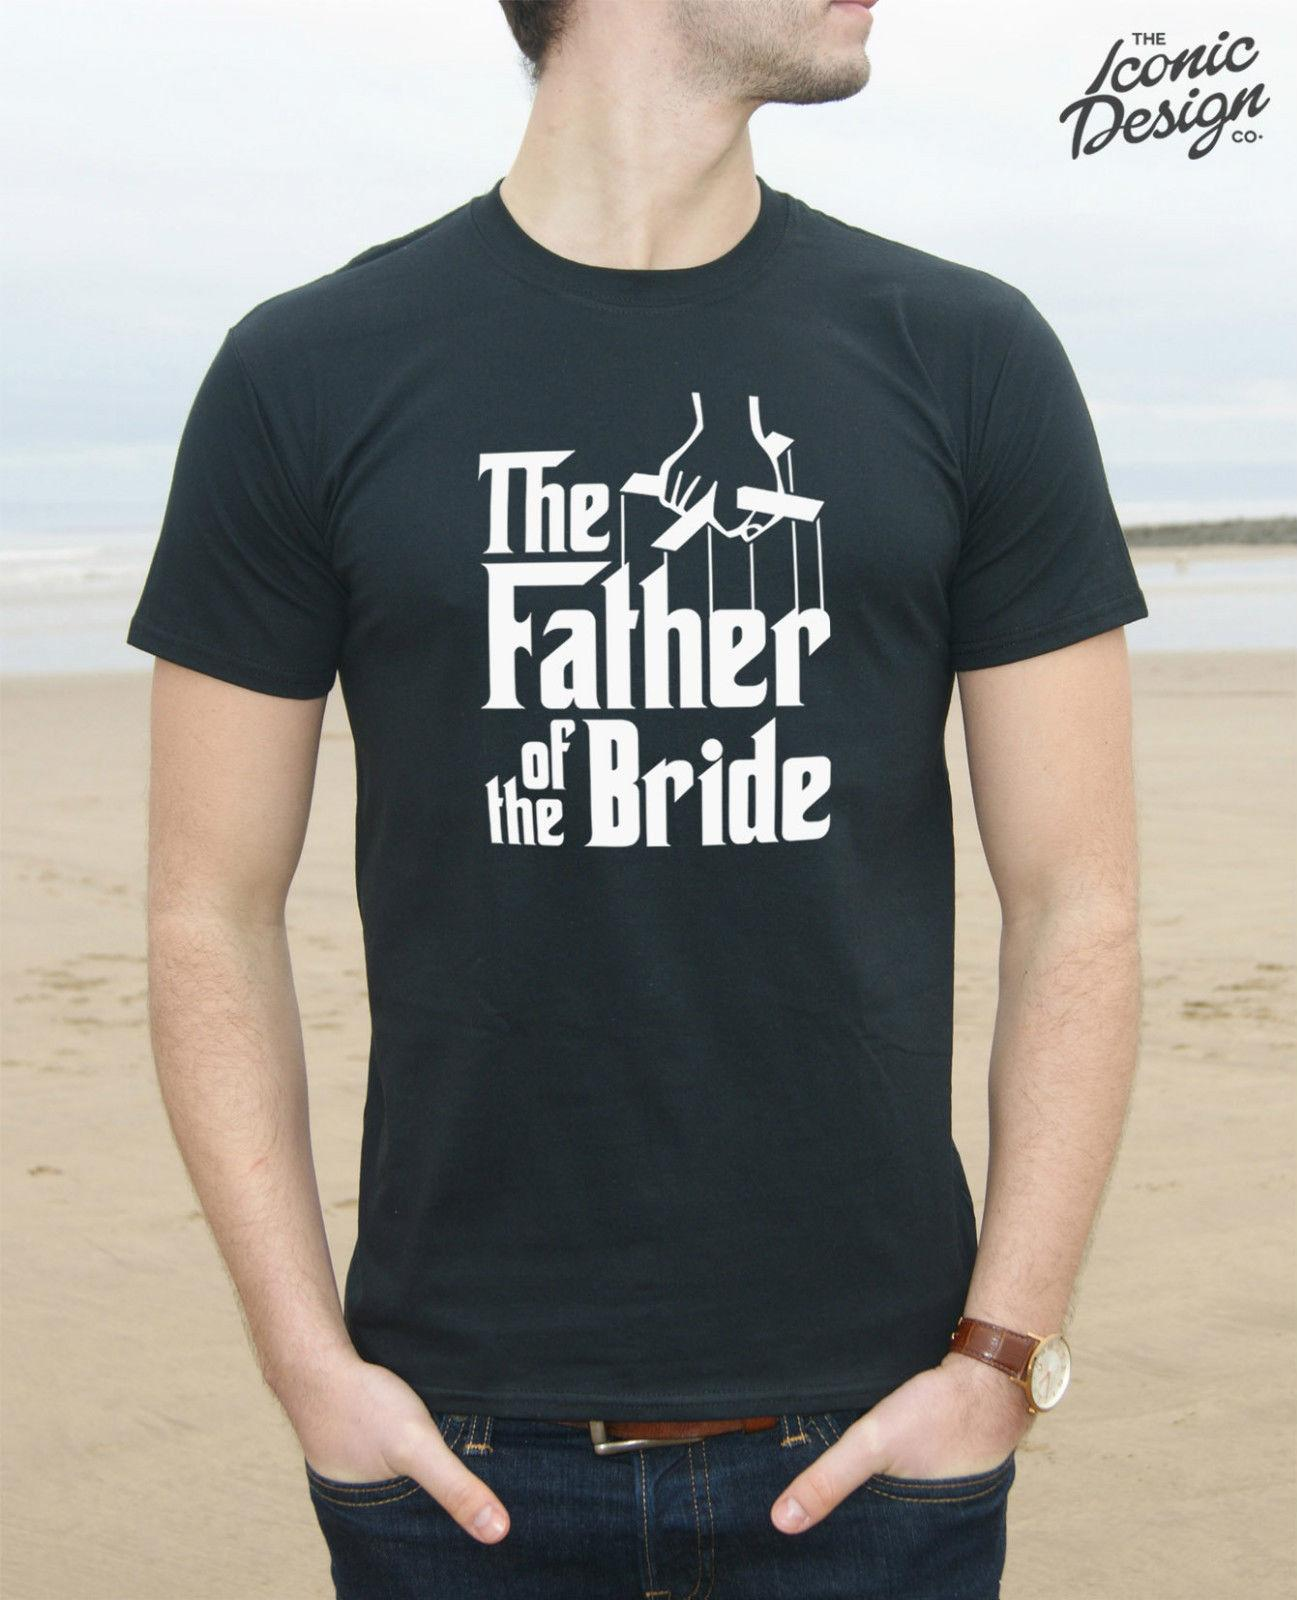 bbc175b10a818 * The Father Of The Bride T-shirt Top Wedding Married Groom Stag Do Funny  Gift Cool Casual Pride T Shirt Men Unisex New